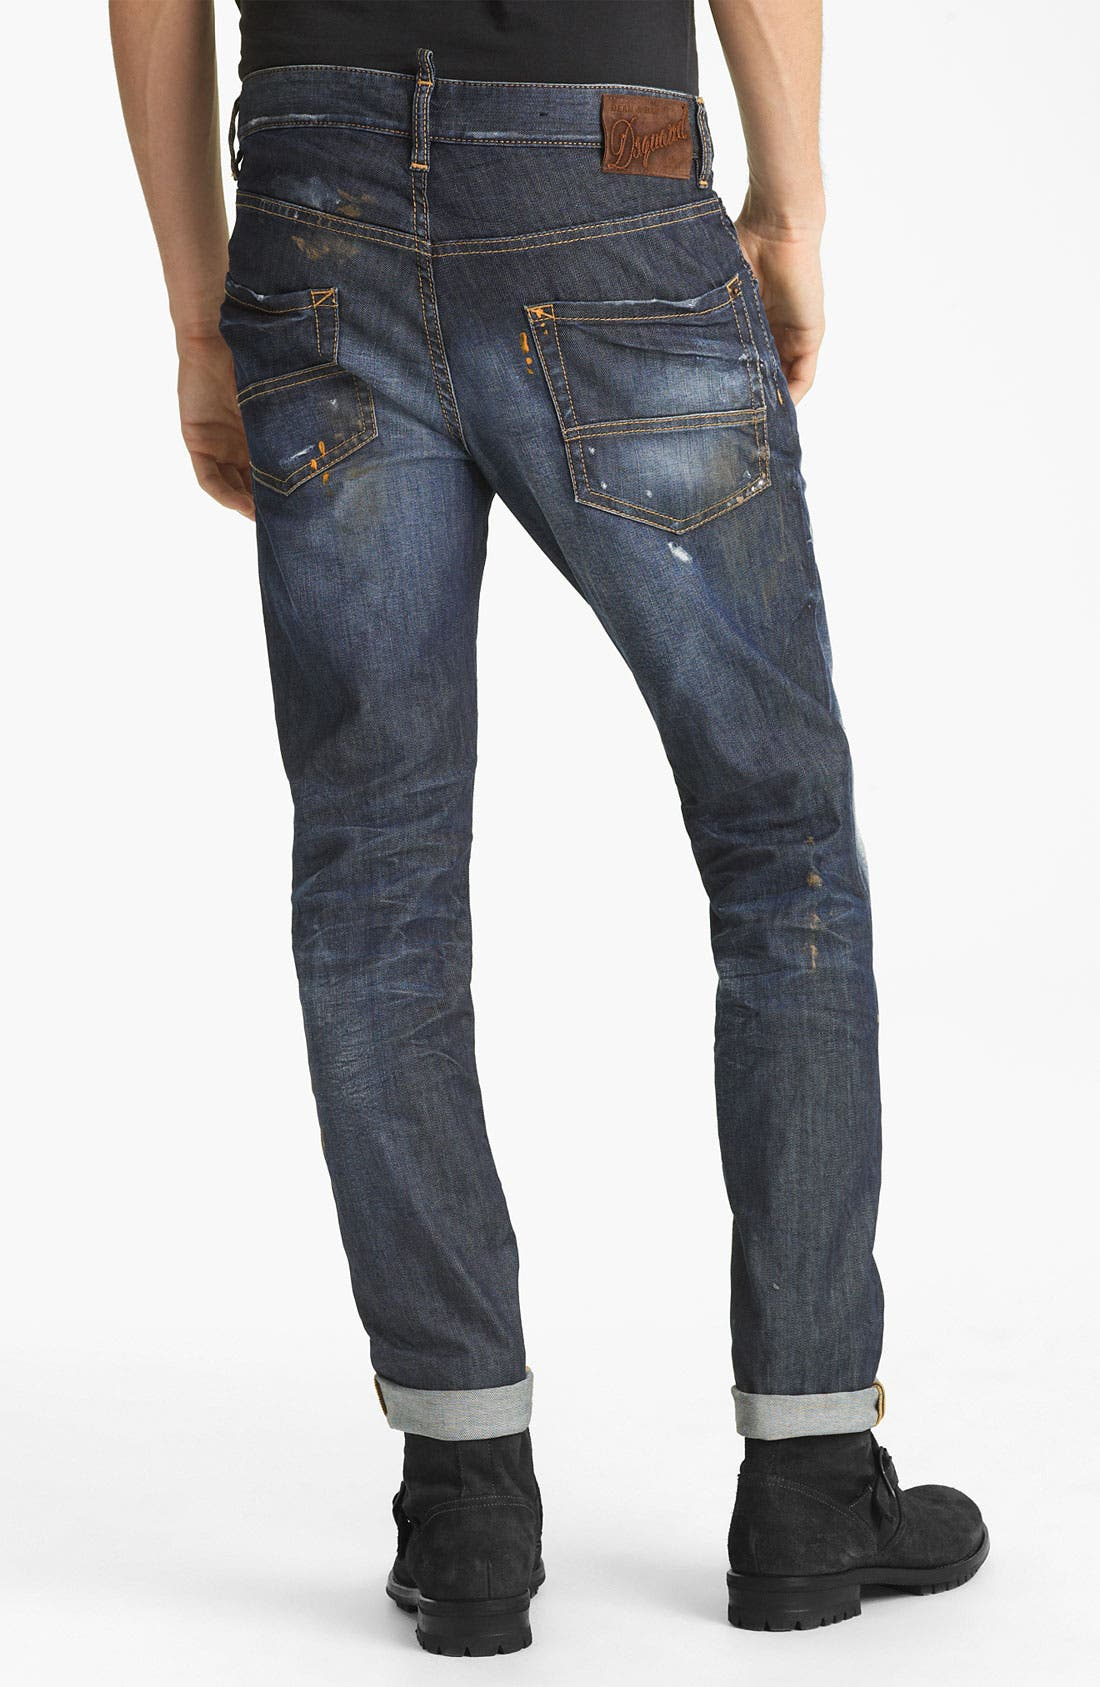 Alternate Image 1 Selected - Dsquared2 'Cool Guy' Slim Straight Jeans (Warm Suede)